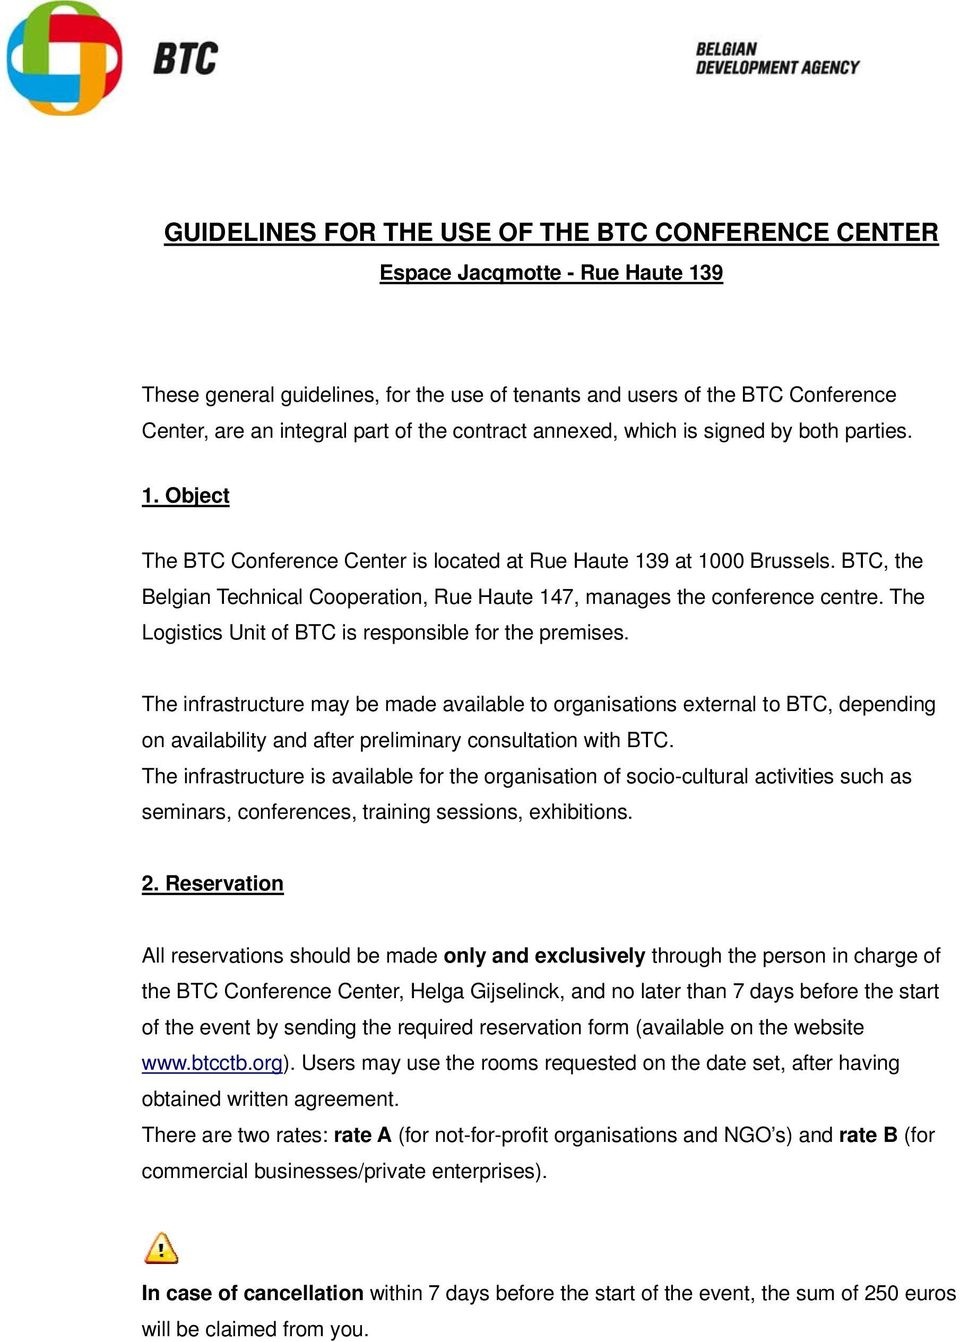 BTC, the Belgian Technical Cooperation, Rue Haute 147, manages the conference centre. The Logistics Unit of BTC is responsible for the premises.